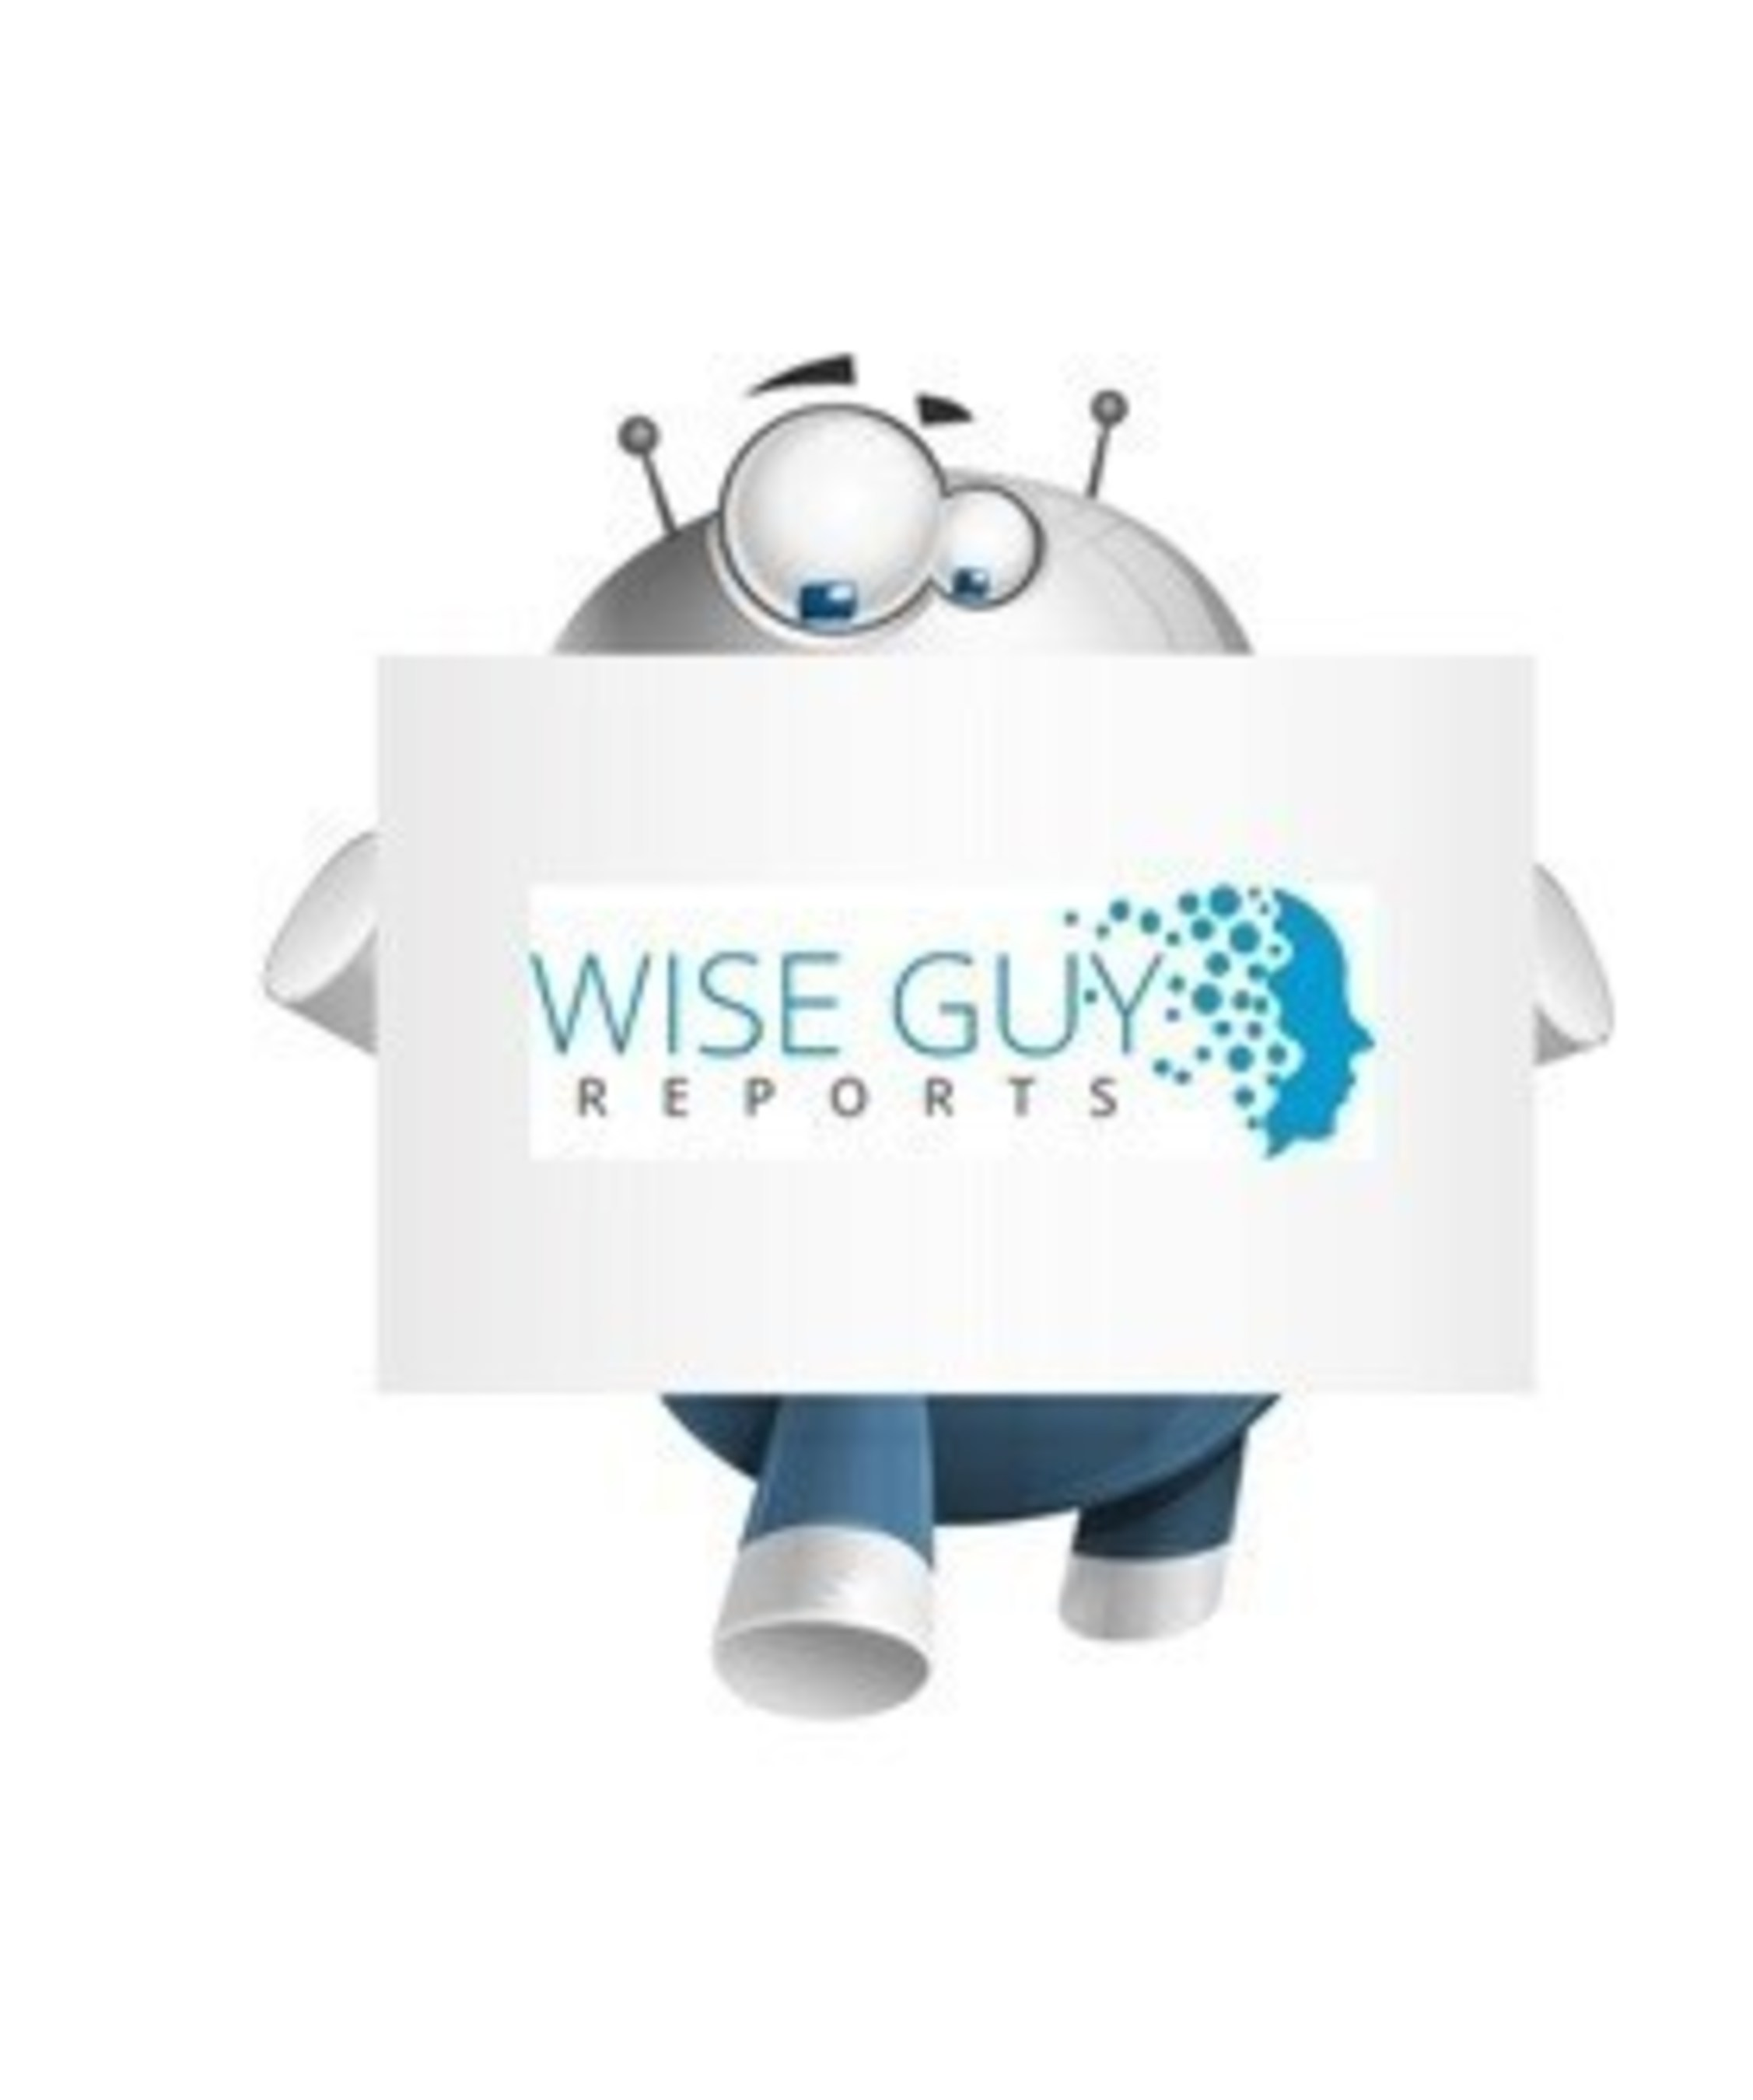 Inertial Navigation System Industry Expected to Reach $11.49 billion by 2022 Says a New Research Report Available at WiseGuyReports.com